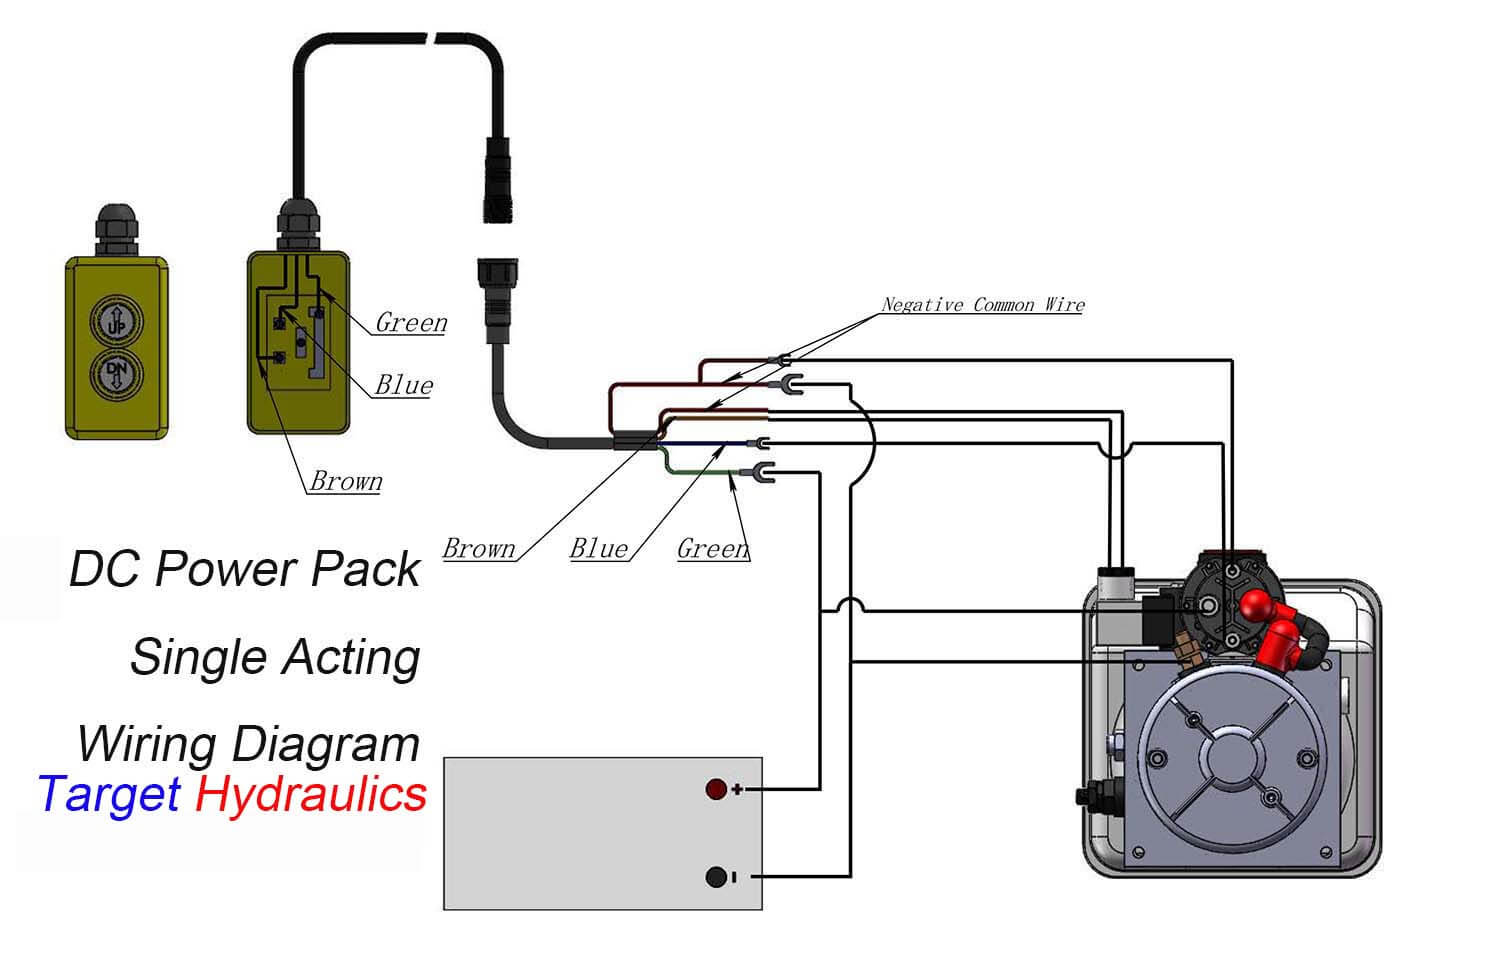 12v hydraulic power pack wiring diagram Download-Hydraulic solenoid Valve Wiring Diagram Best Amazing Diagram Hydraulic System Electrical Circuit 20-n